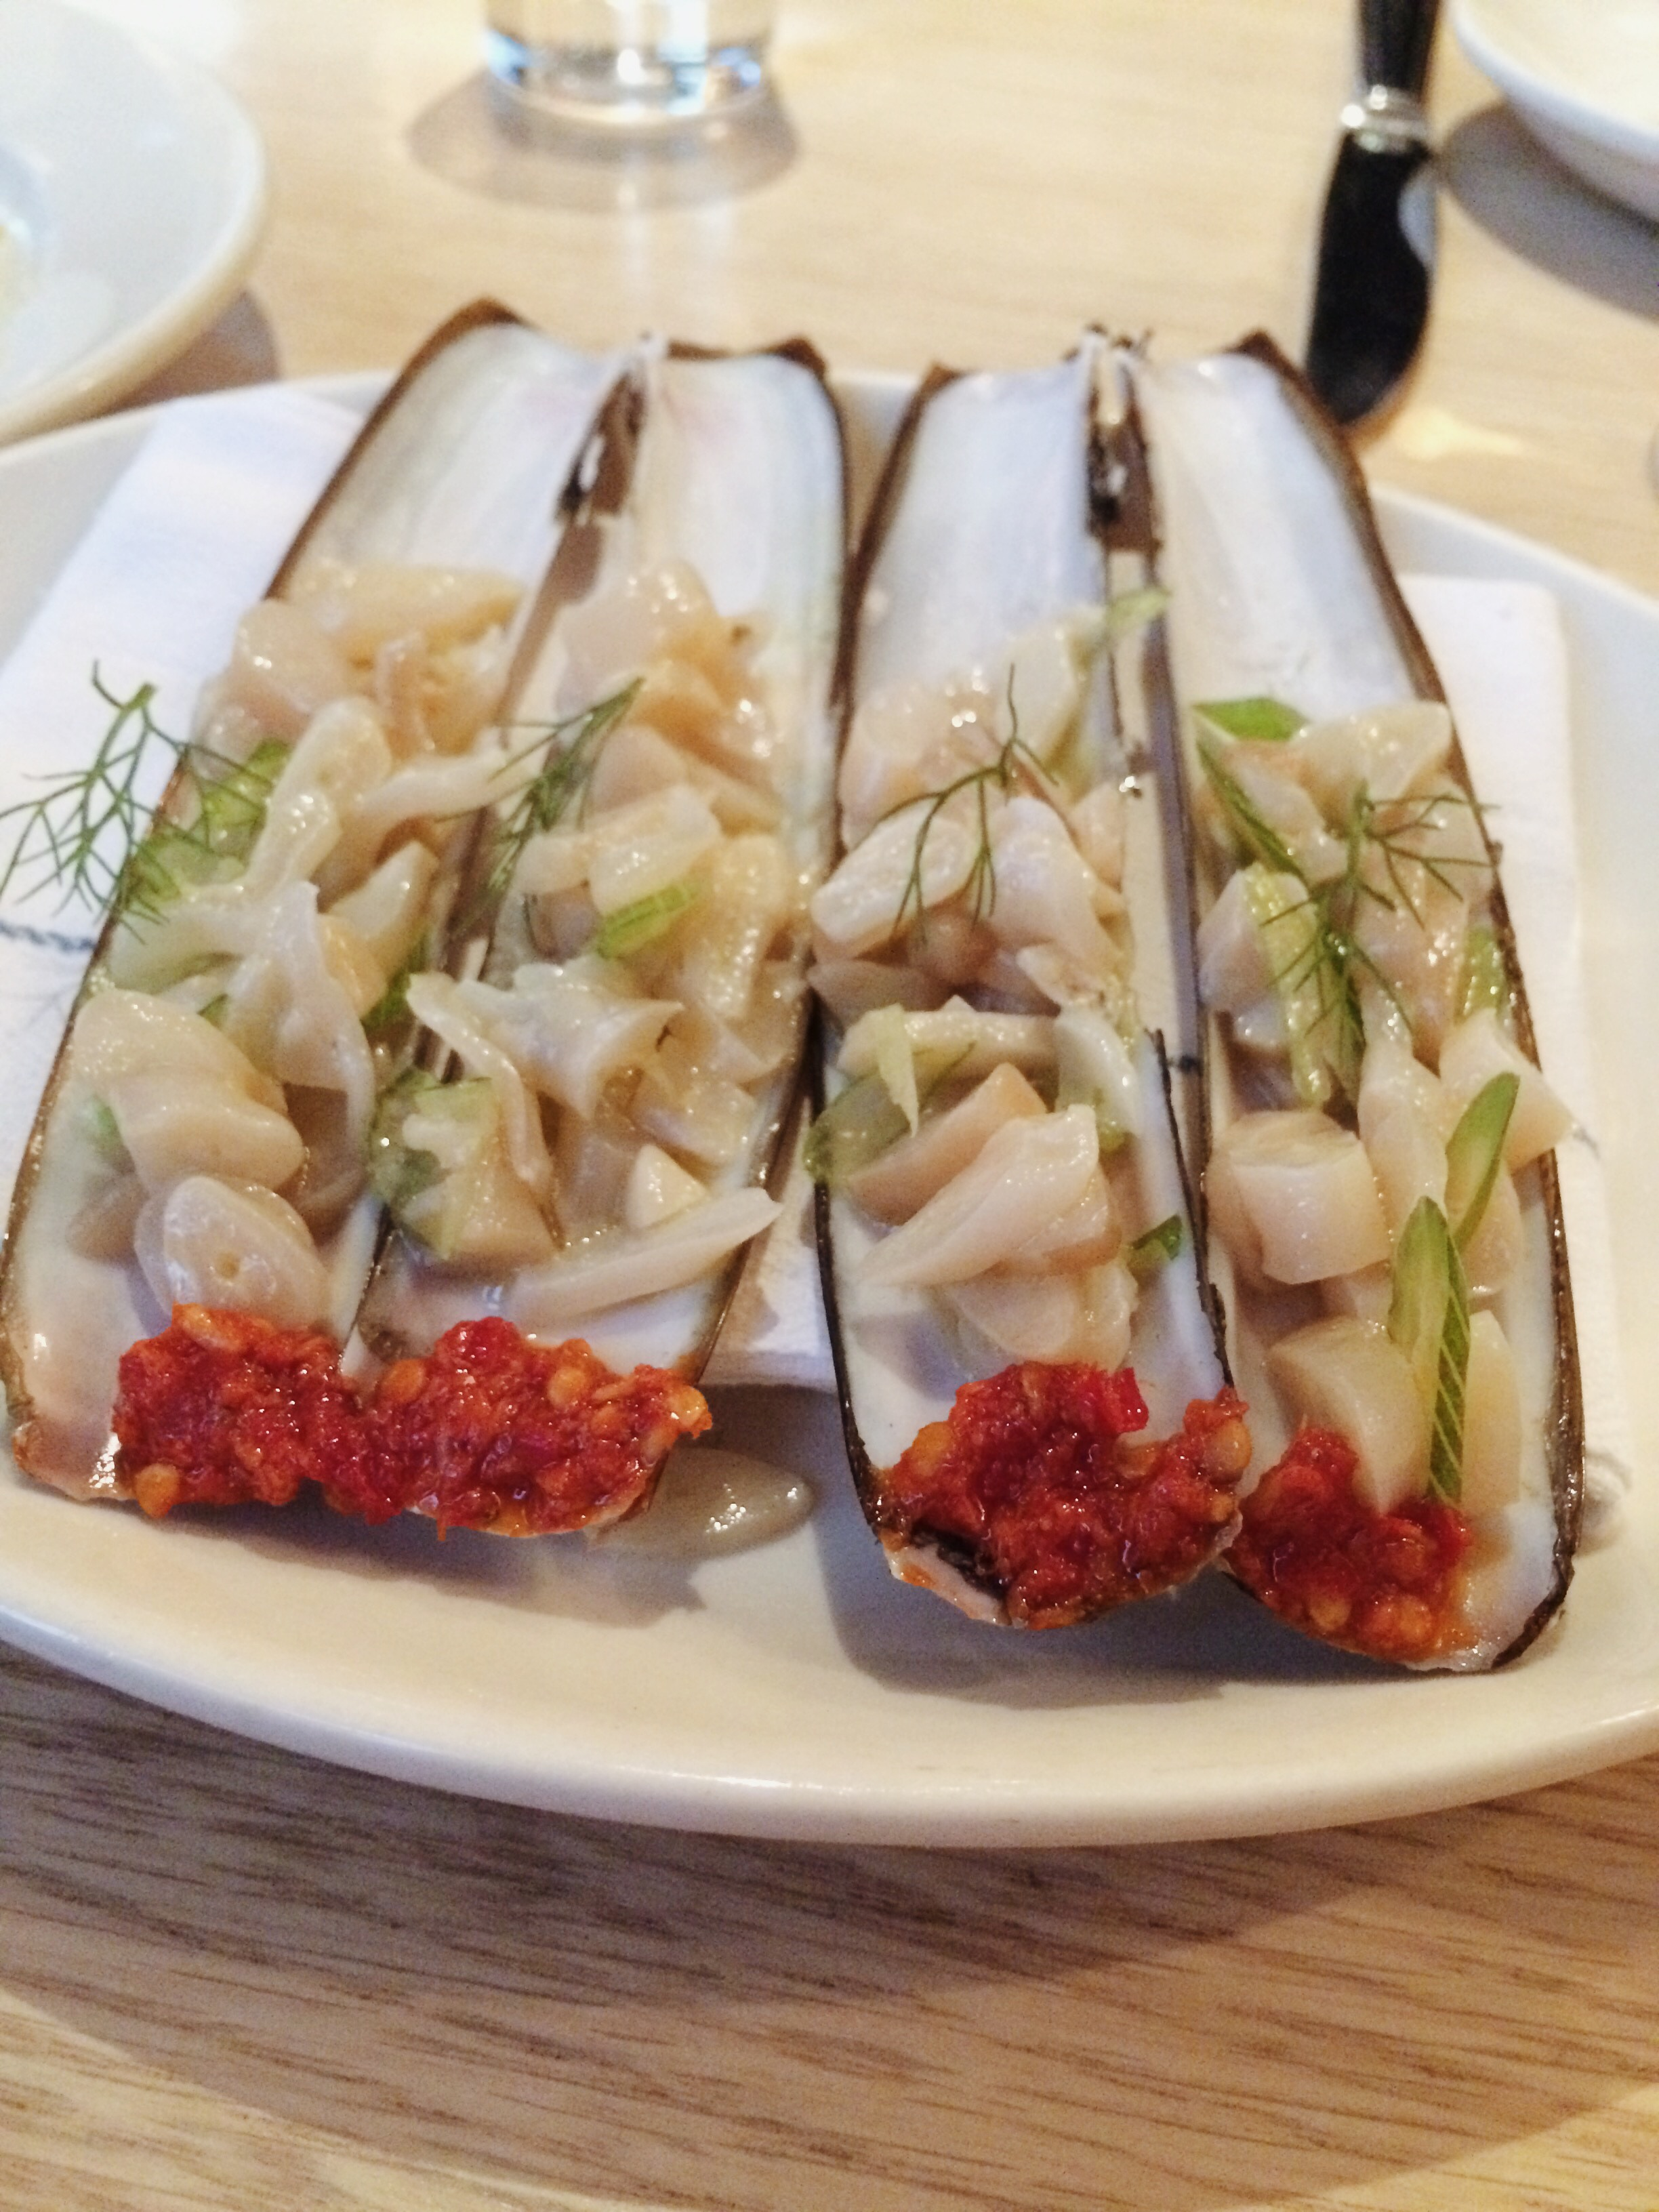 The razor clams with pickled chiles and fennel, one of the exquisitecrudo dishes Chef Ryan presents.